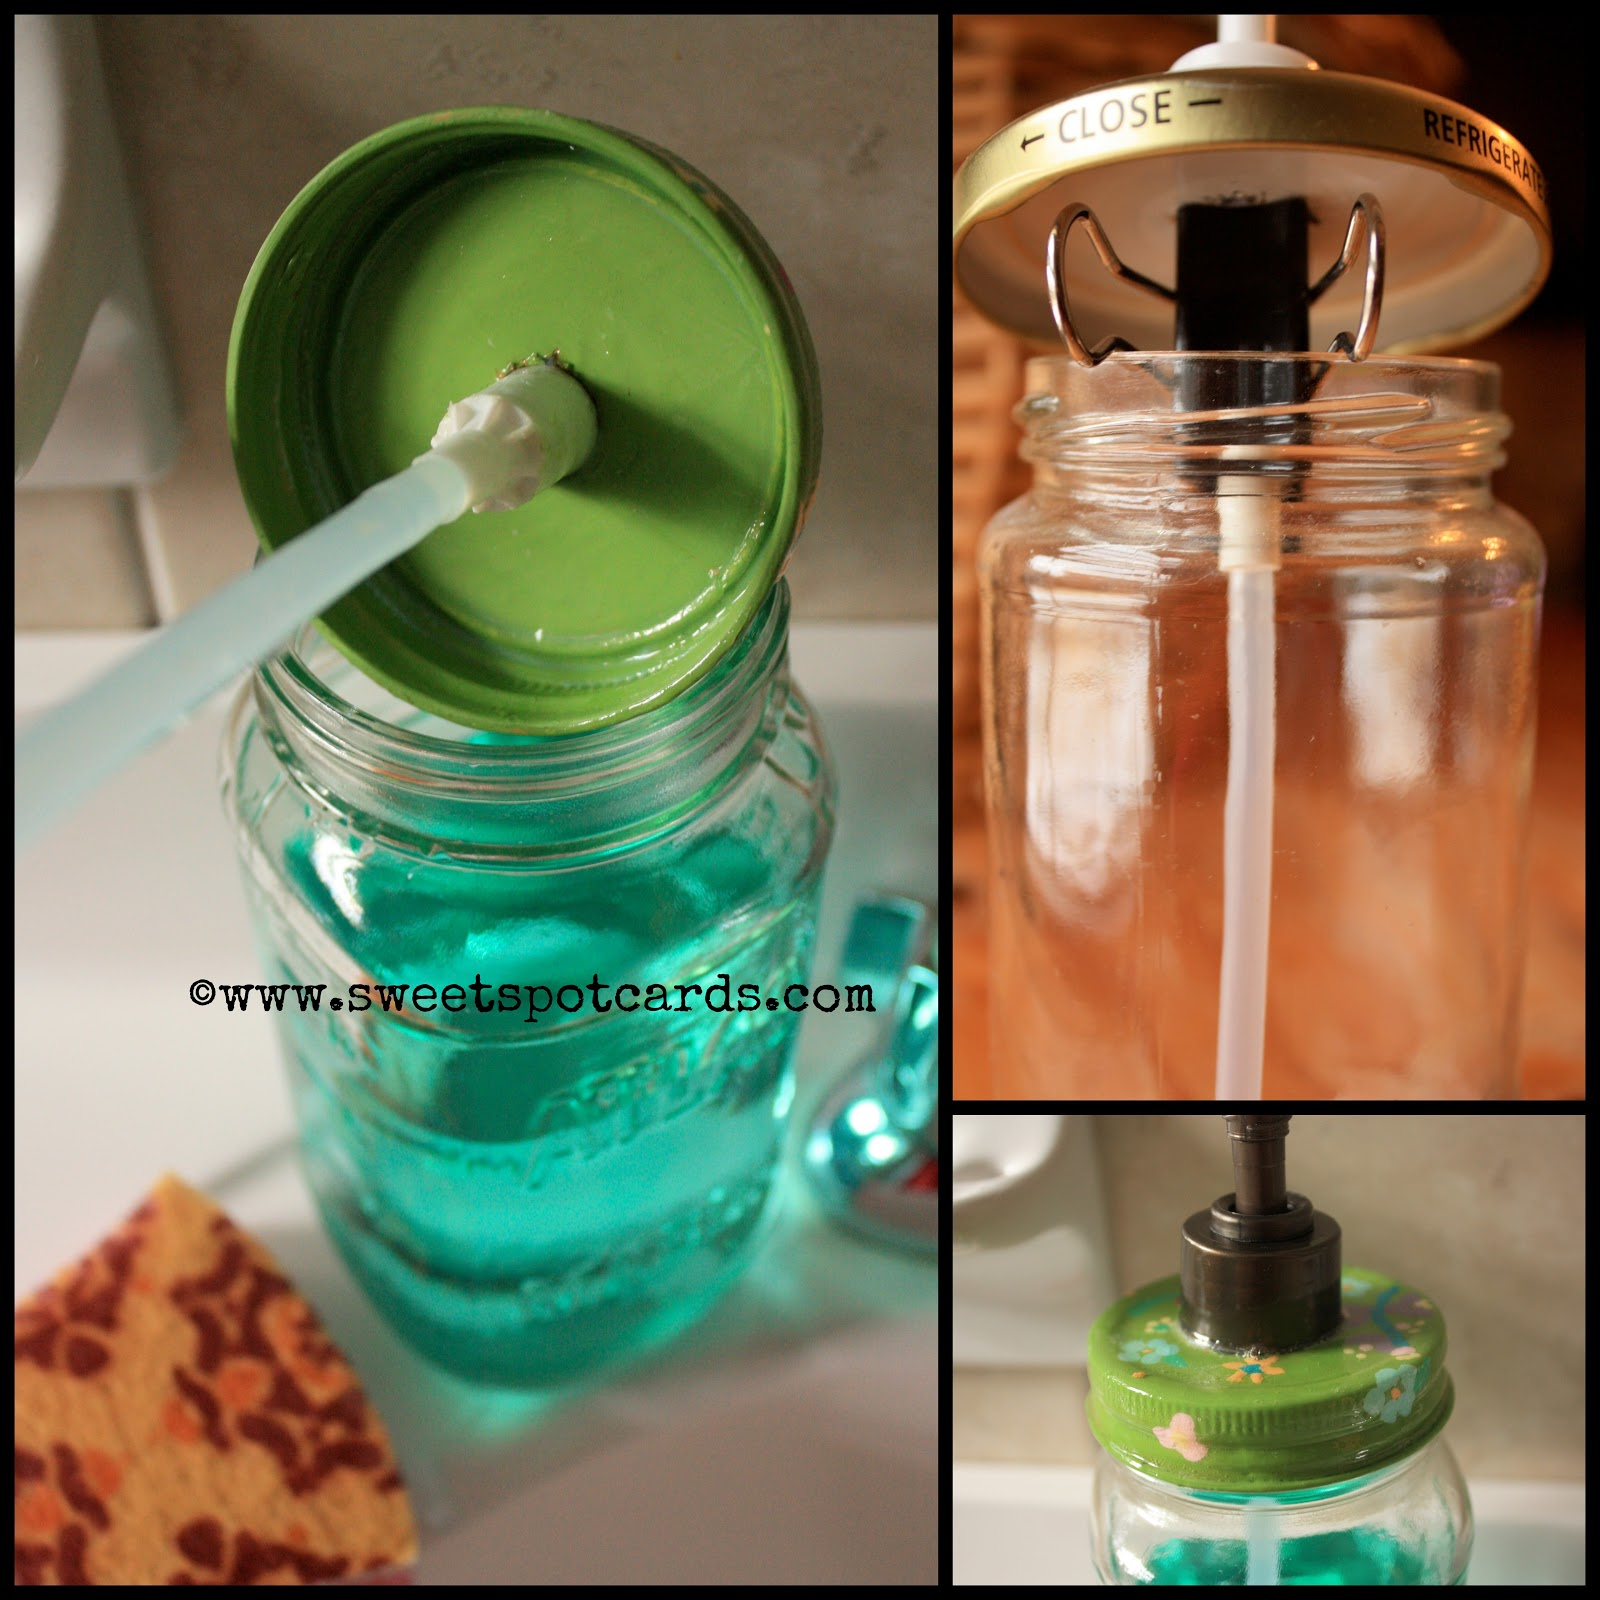 Cork Pump for Soap Dispenser http://www.sweetspotcards.com/2013/02/diy-mason-jar-soap-dispenser.html